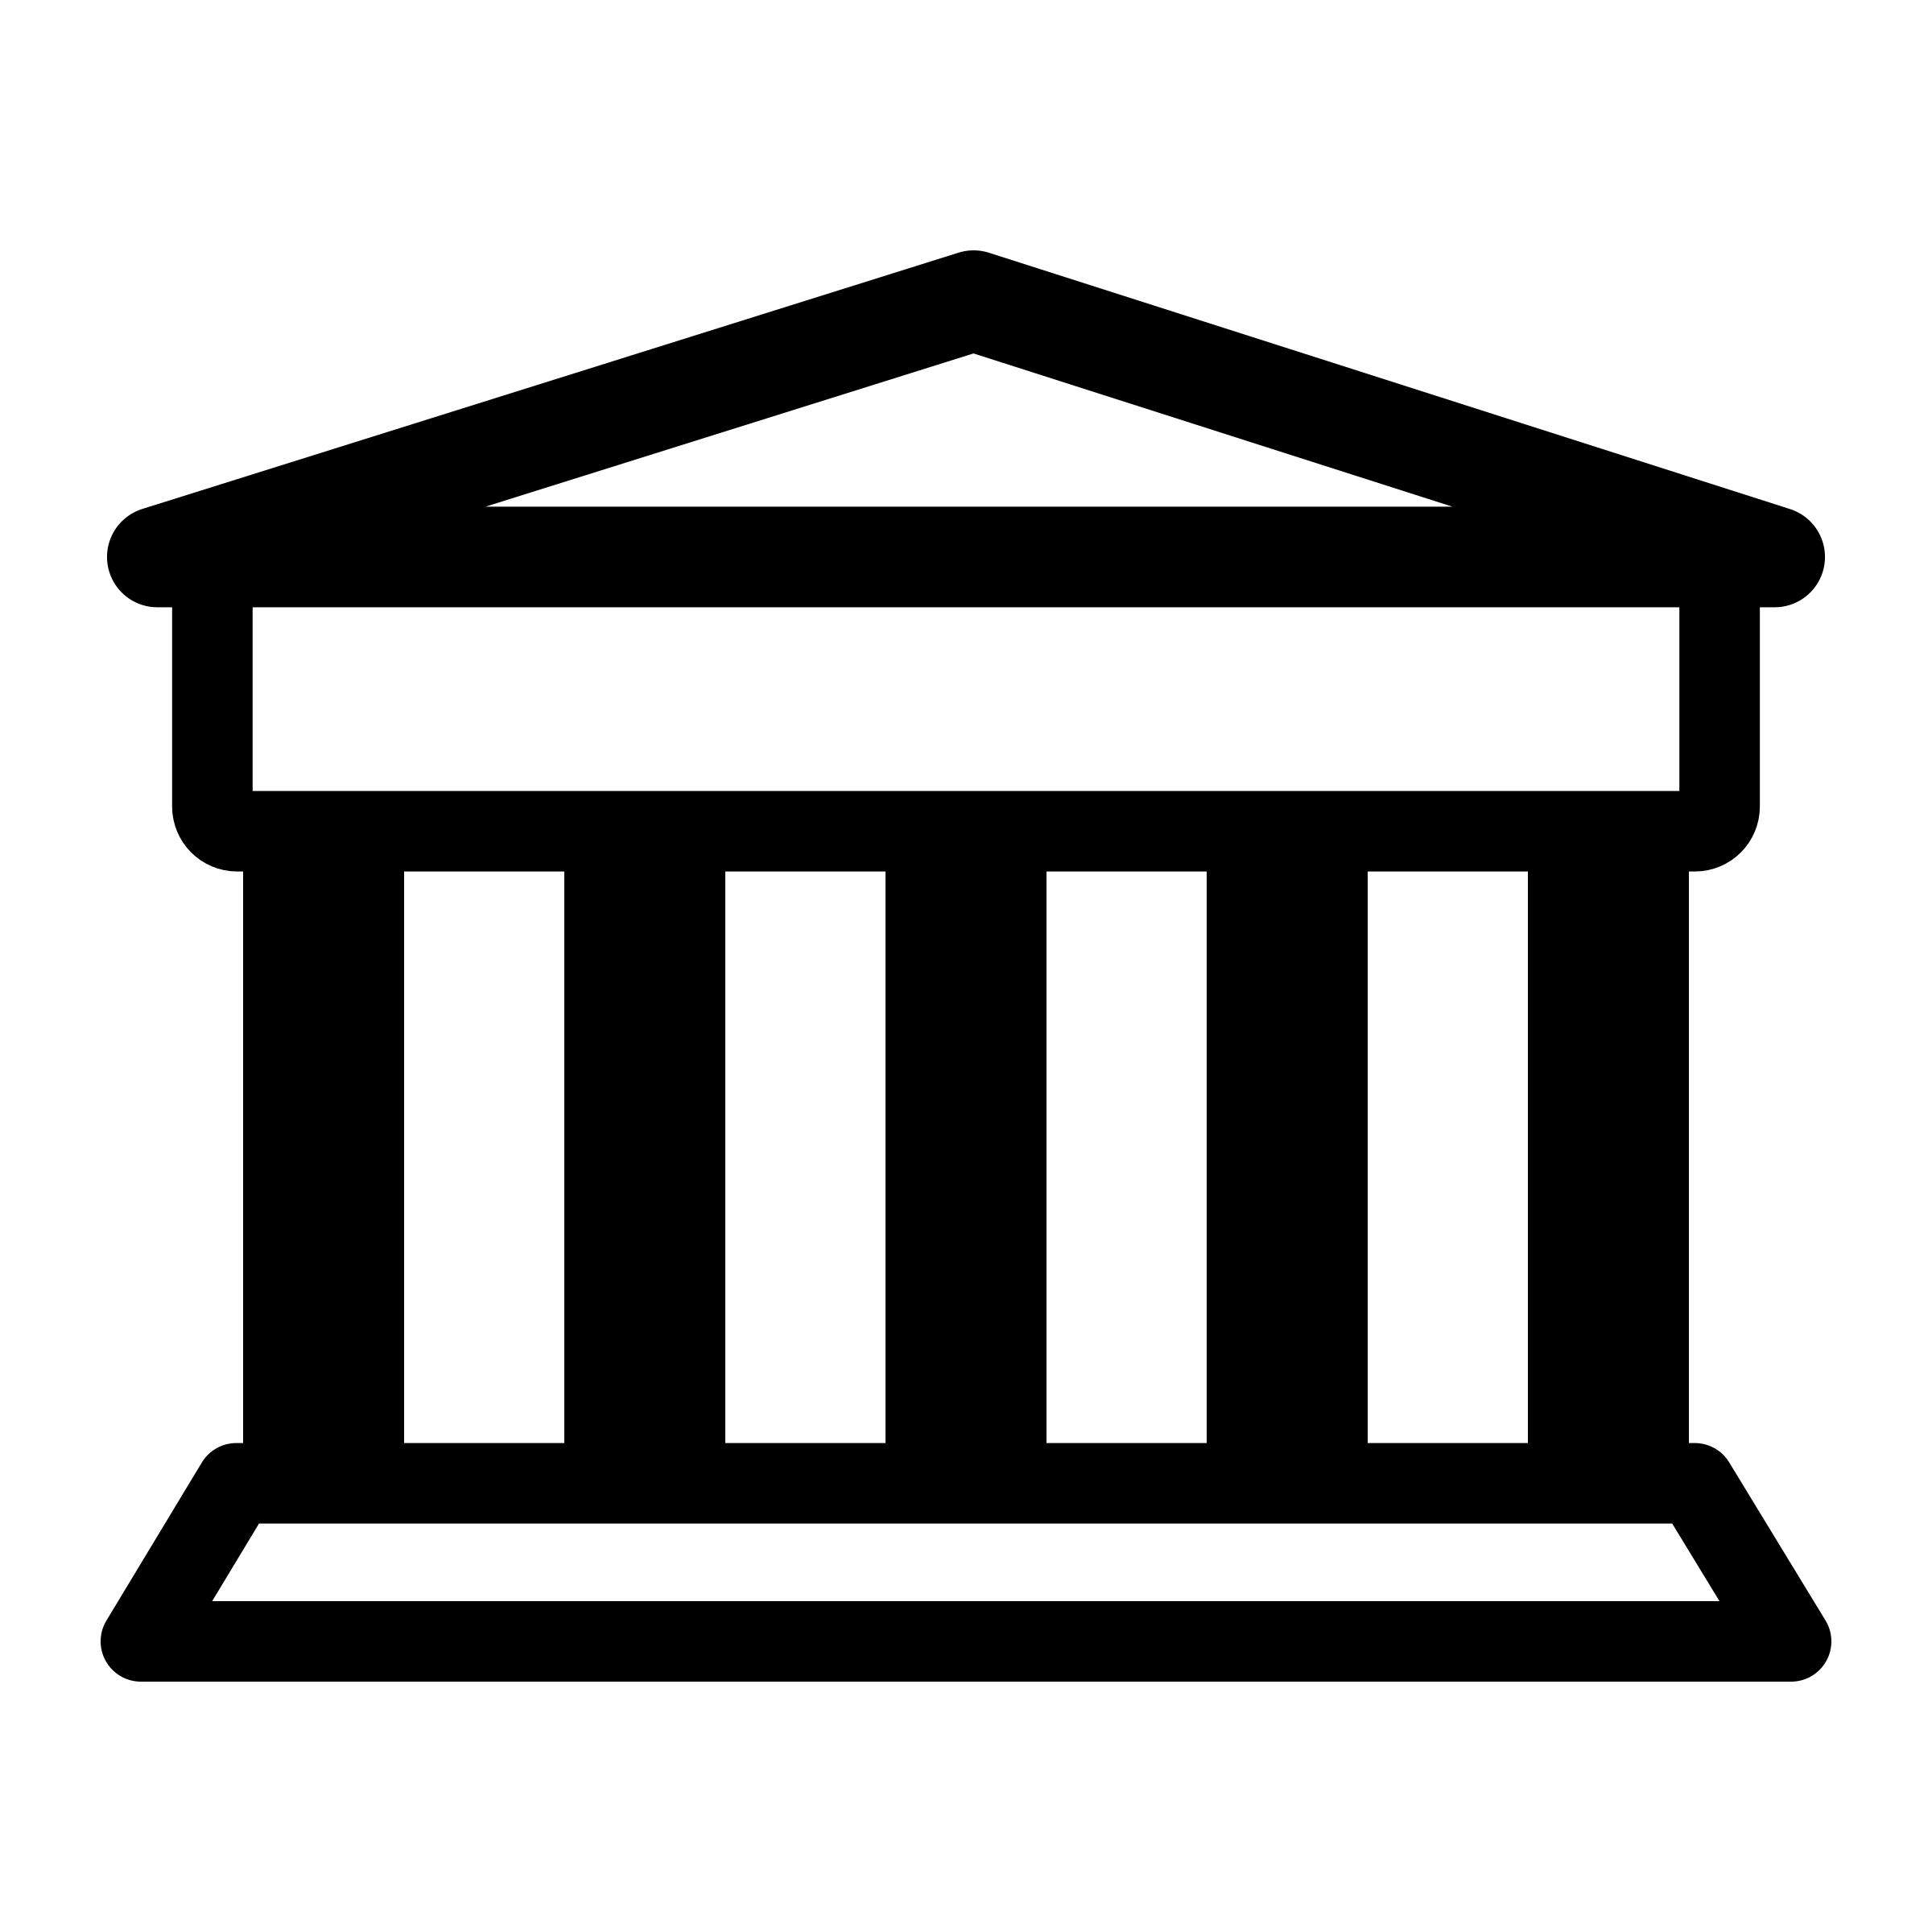 Banker clipart bank. Mono icons png free